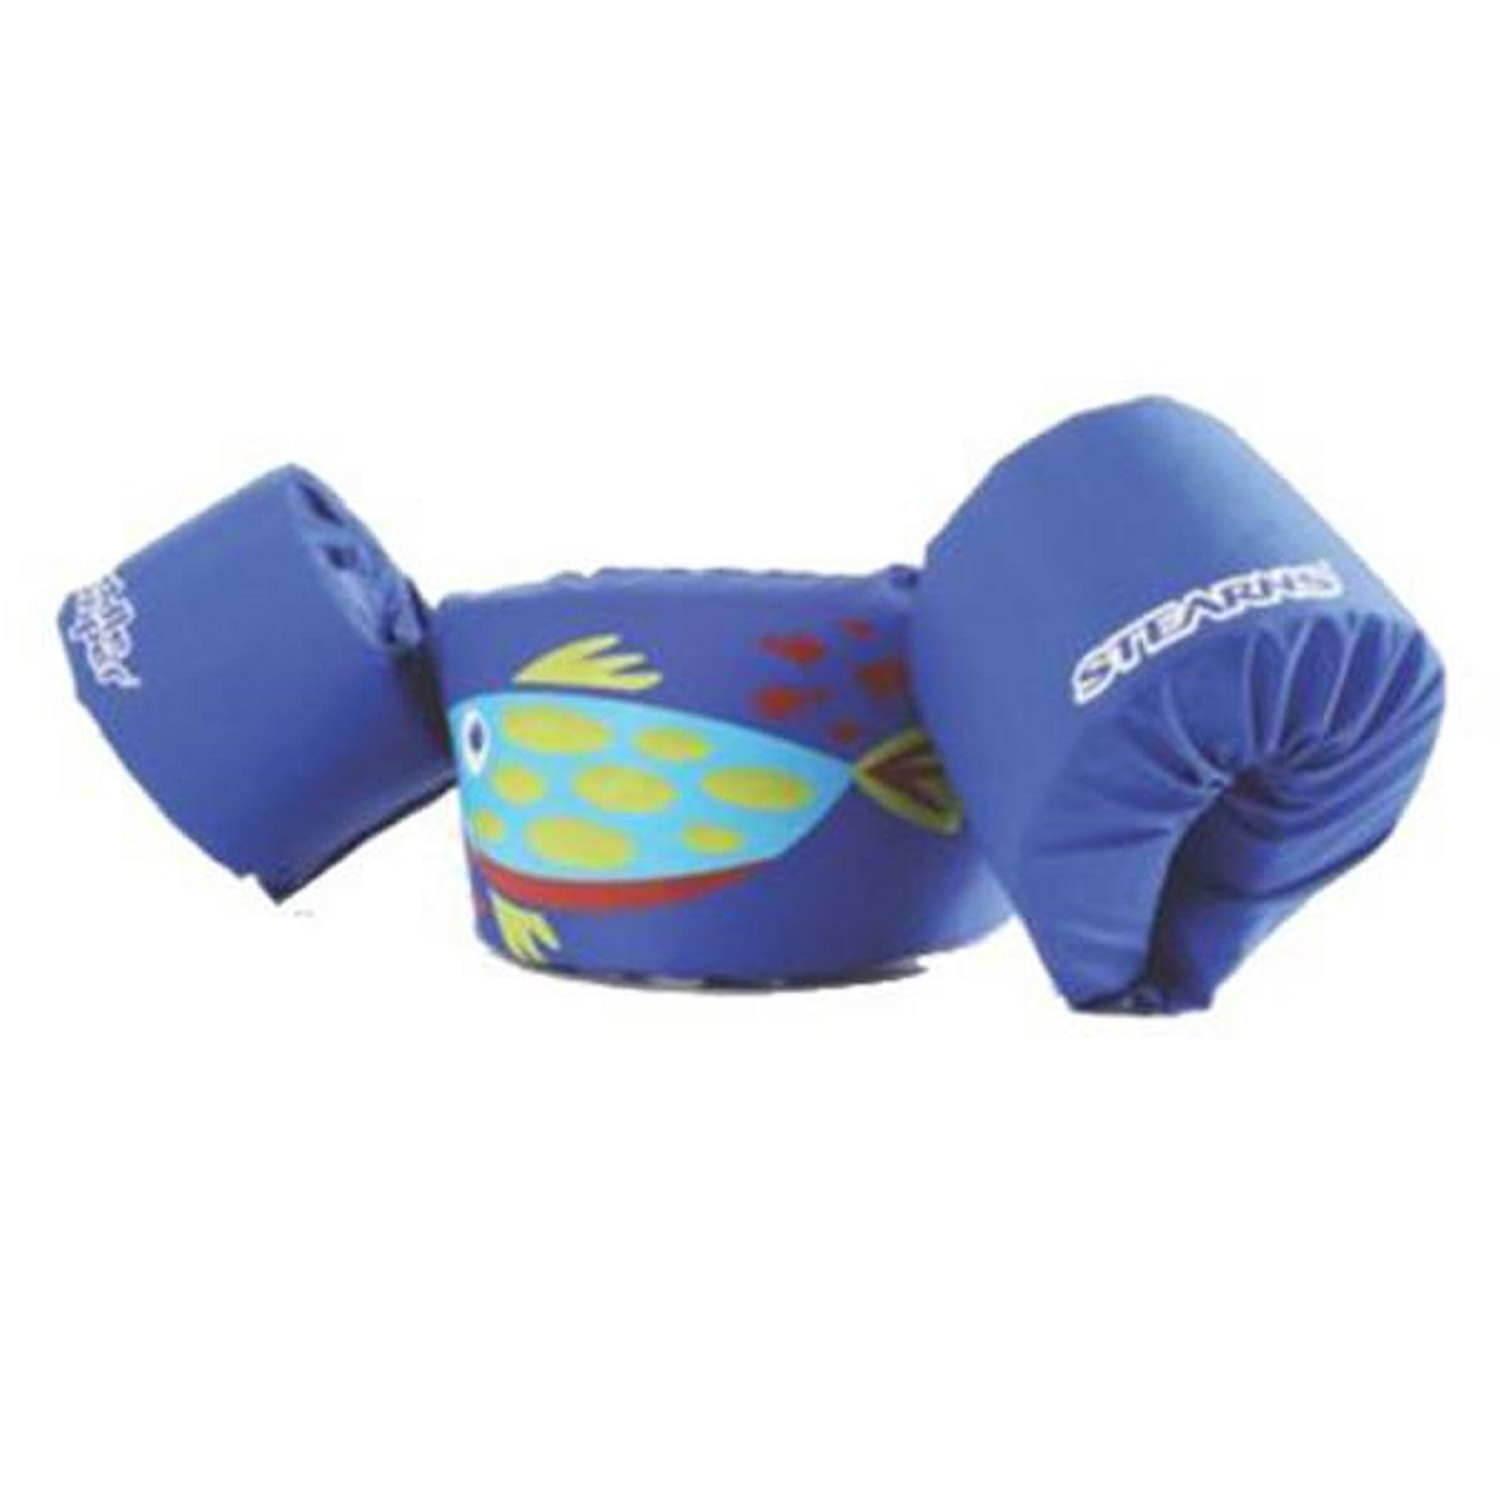 Stearns Puddle Jumper Children's Life Jacket Blue Fish by Stearns